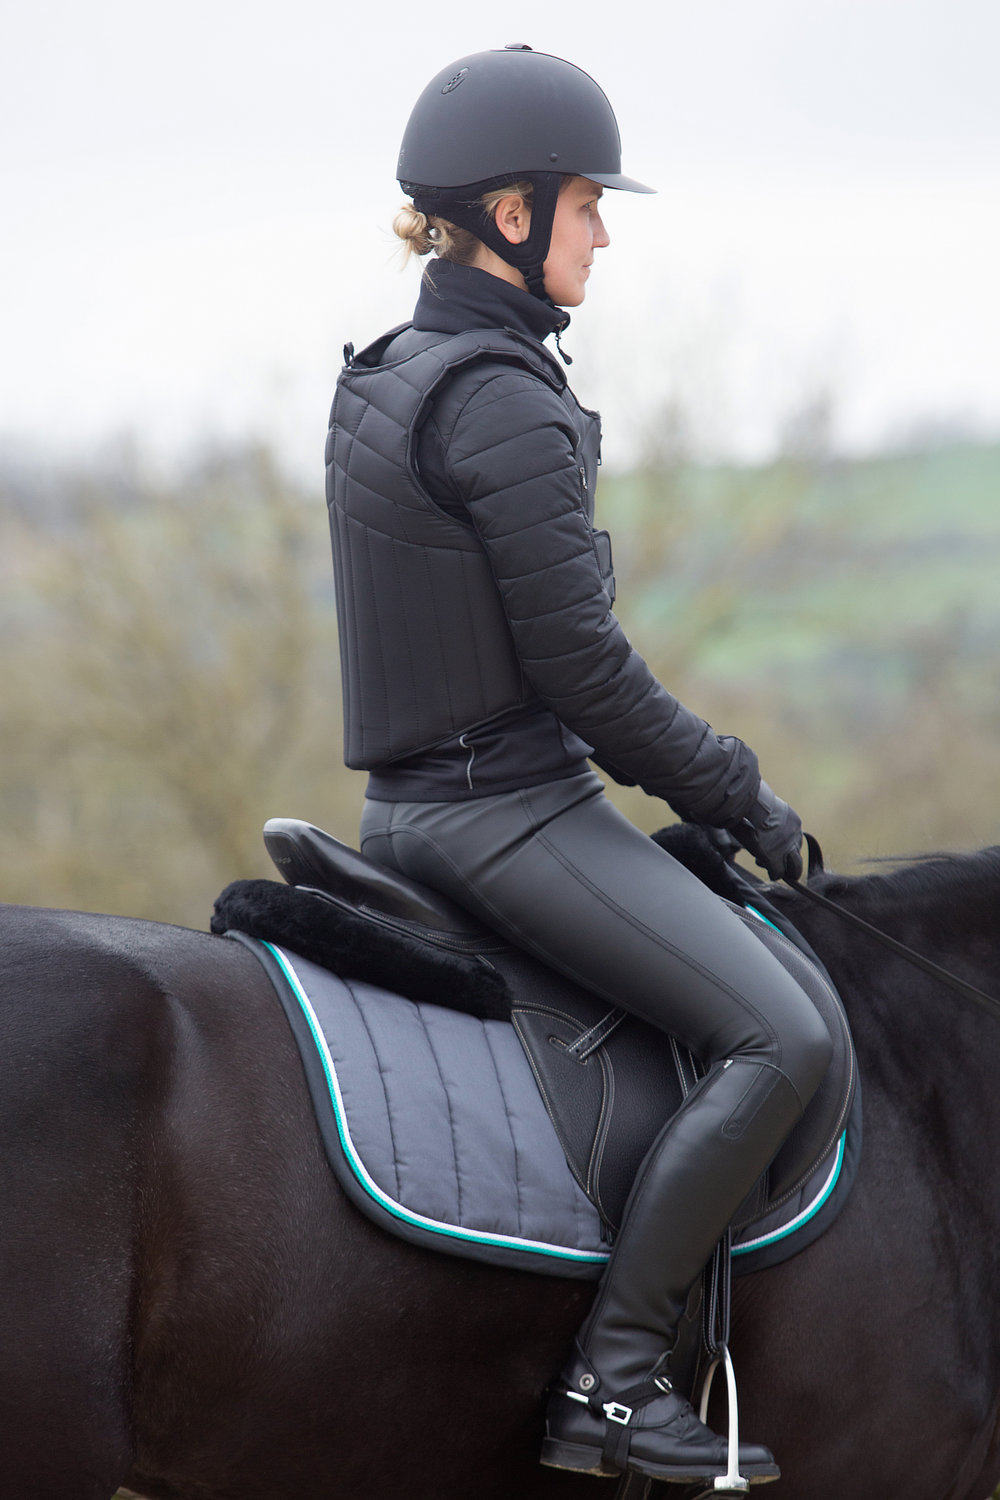 Kipwarm Womens Waterproof and breathable breeches